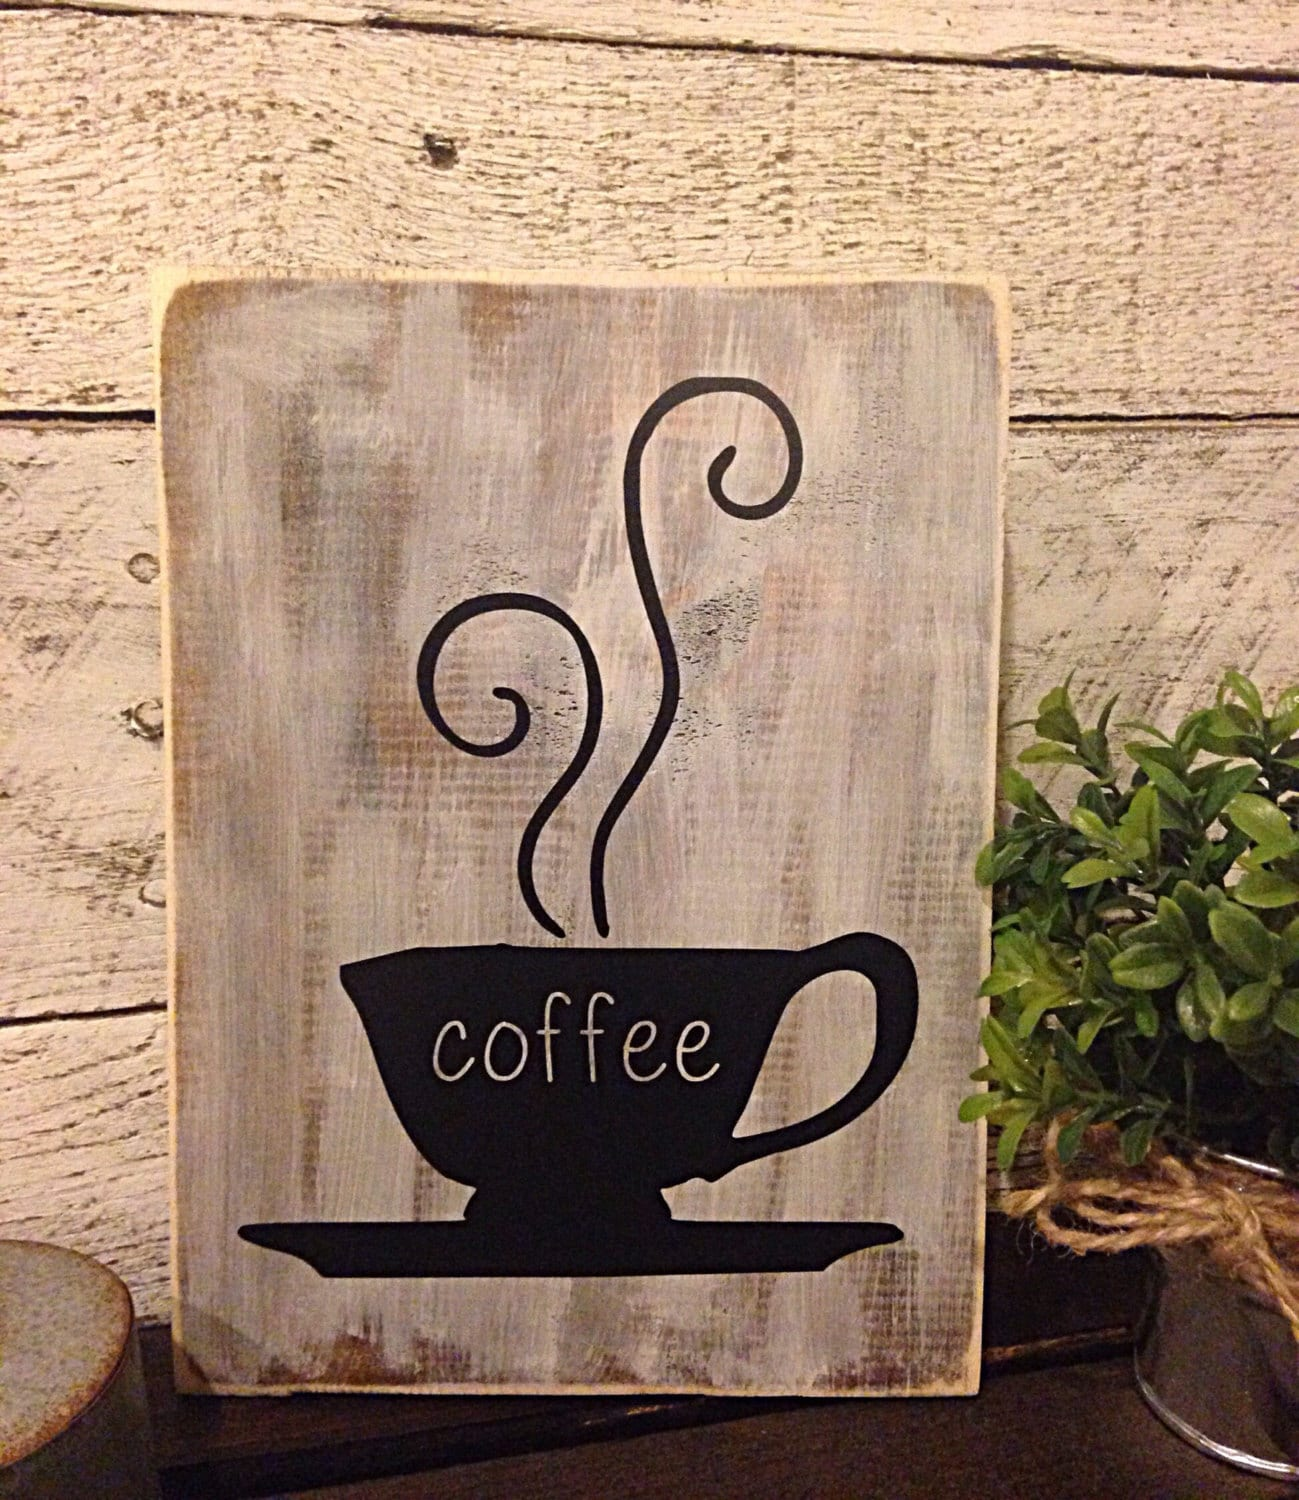 Coffee Sign Rustic Kitchen Decor Coffee Bar Sign Cafe. Purple And Grey Living Room Ideas. Living Room Furniture Decor. How To Get Free Rooms In Vegas. Living Room Plants. Beige Decorative Pillows. Decorative Wall Art. White Decorative Mirror. Tiles For Living Room Floor